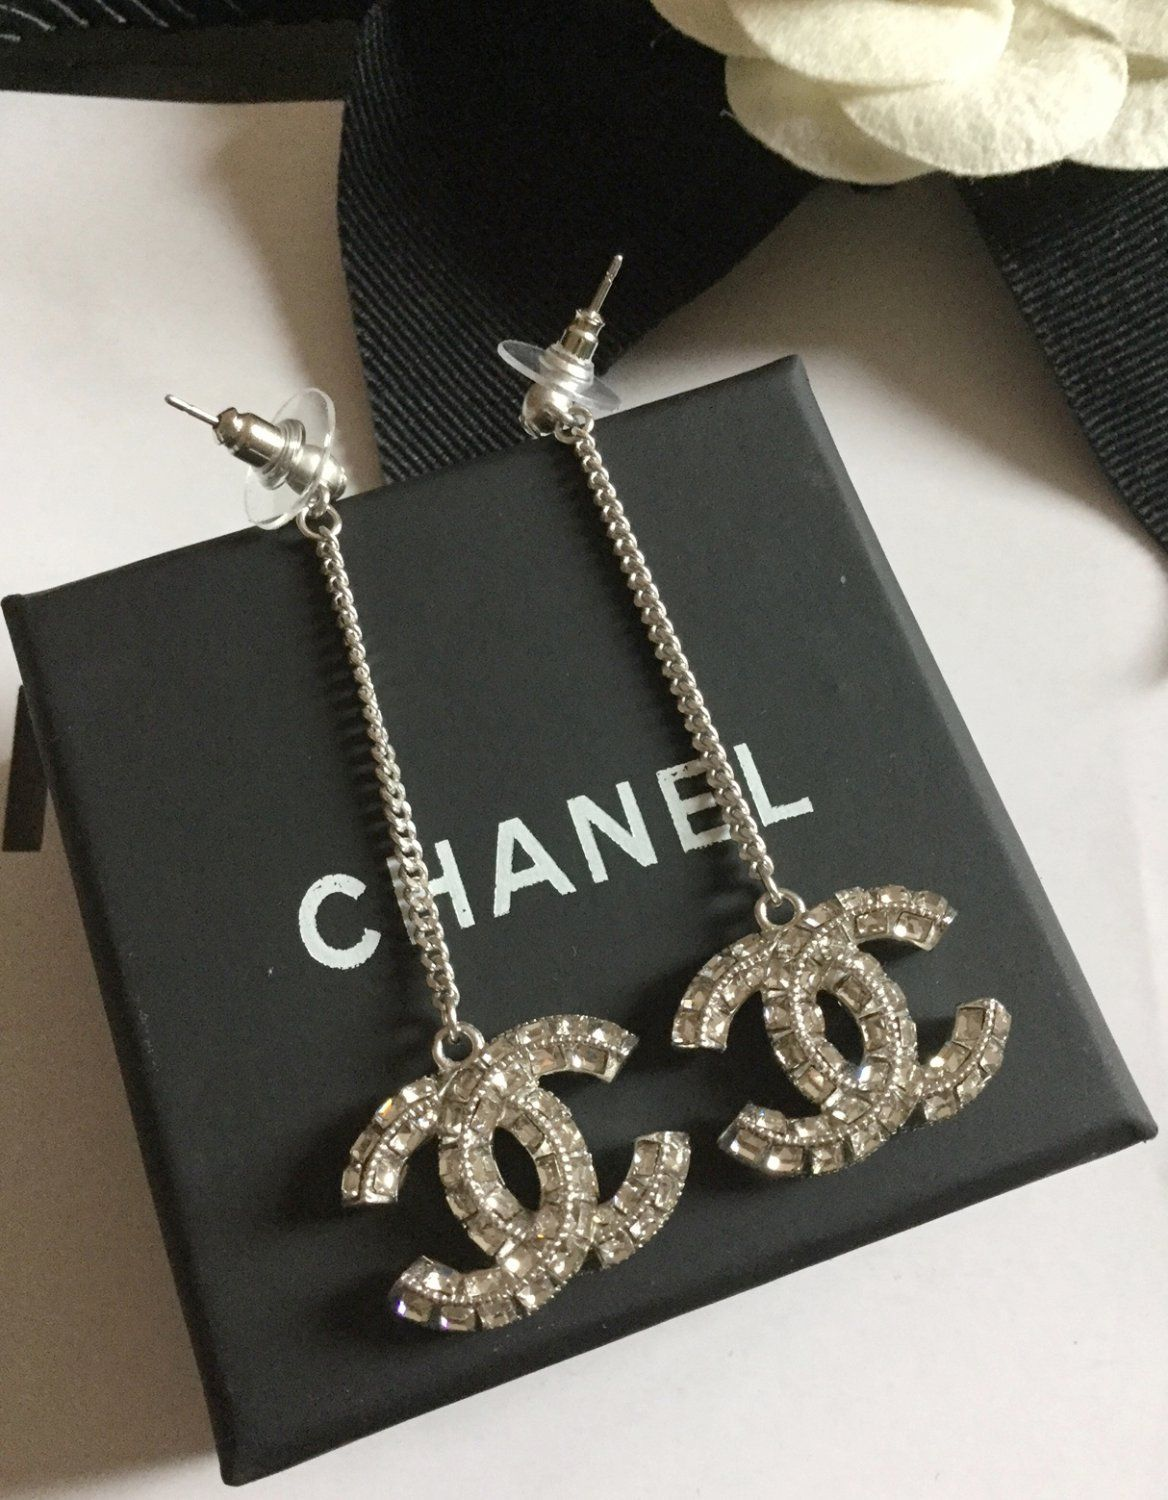 d6c675c86 CHANEL+Silver+Crystal+Baguette+Dangle+Chain+Link+Earrings+CC+HALLMARK